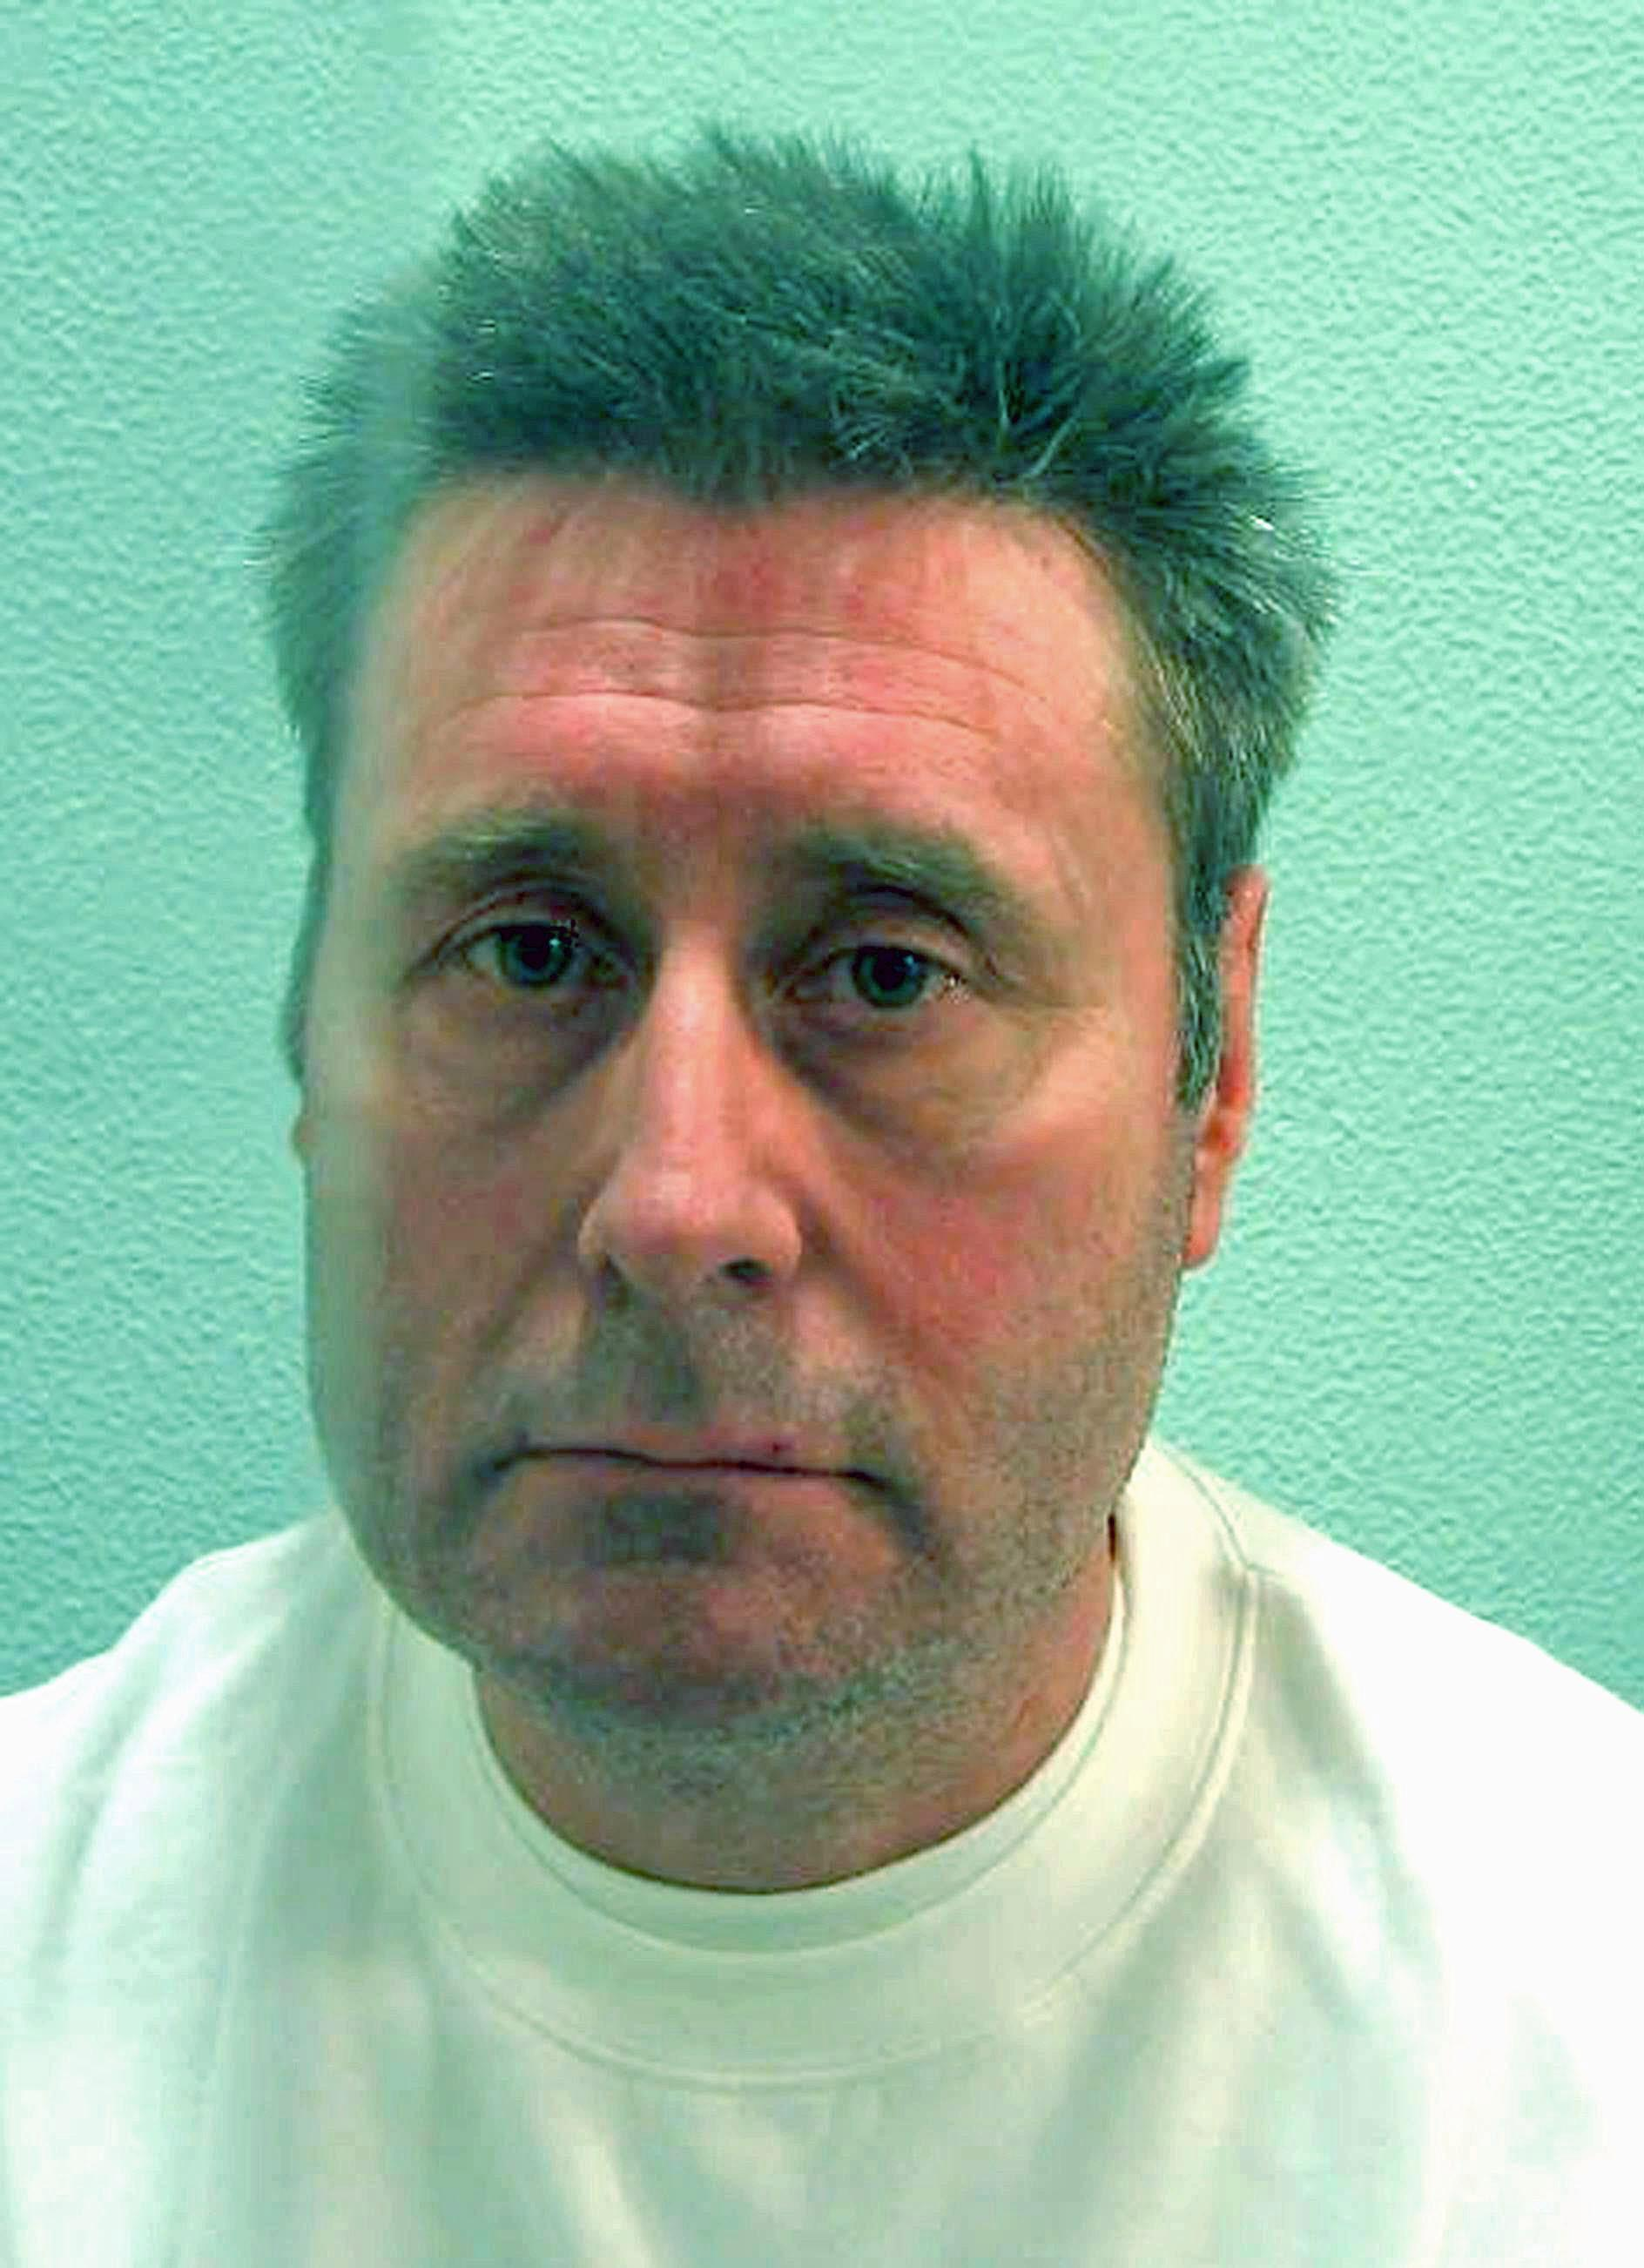 100 cases against black cab rapist John Worboys could be reopened after early release